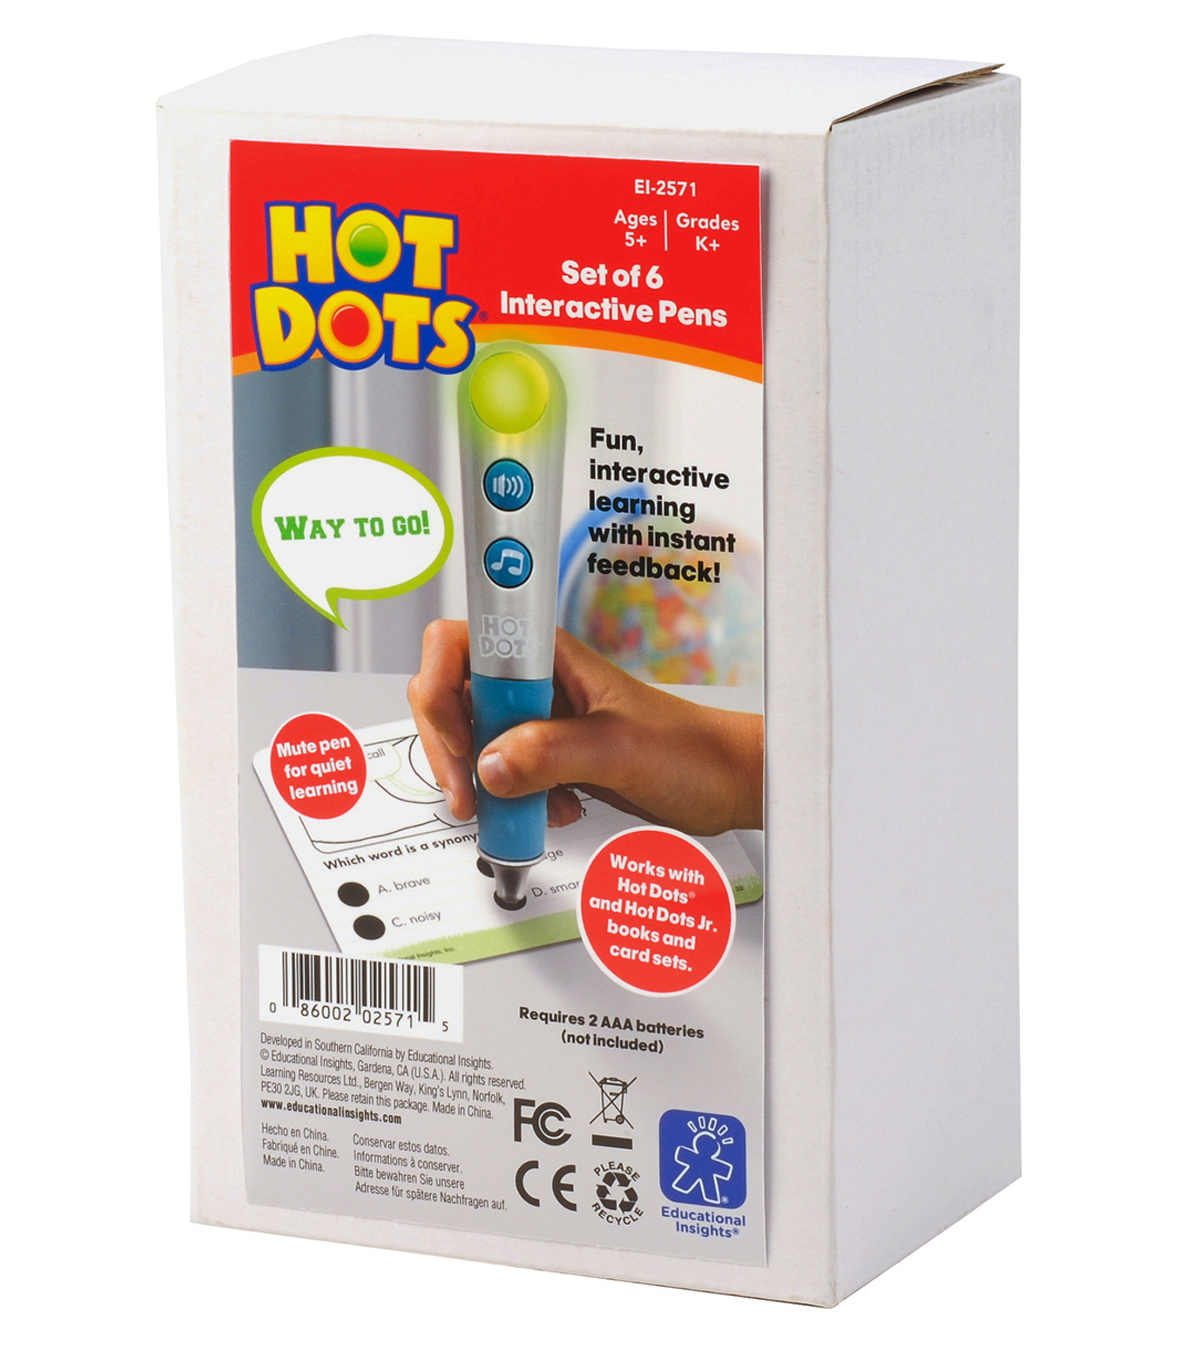 Hot Dots Talking Pen, Set of 6